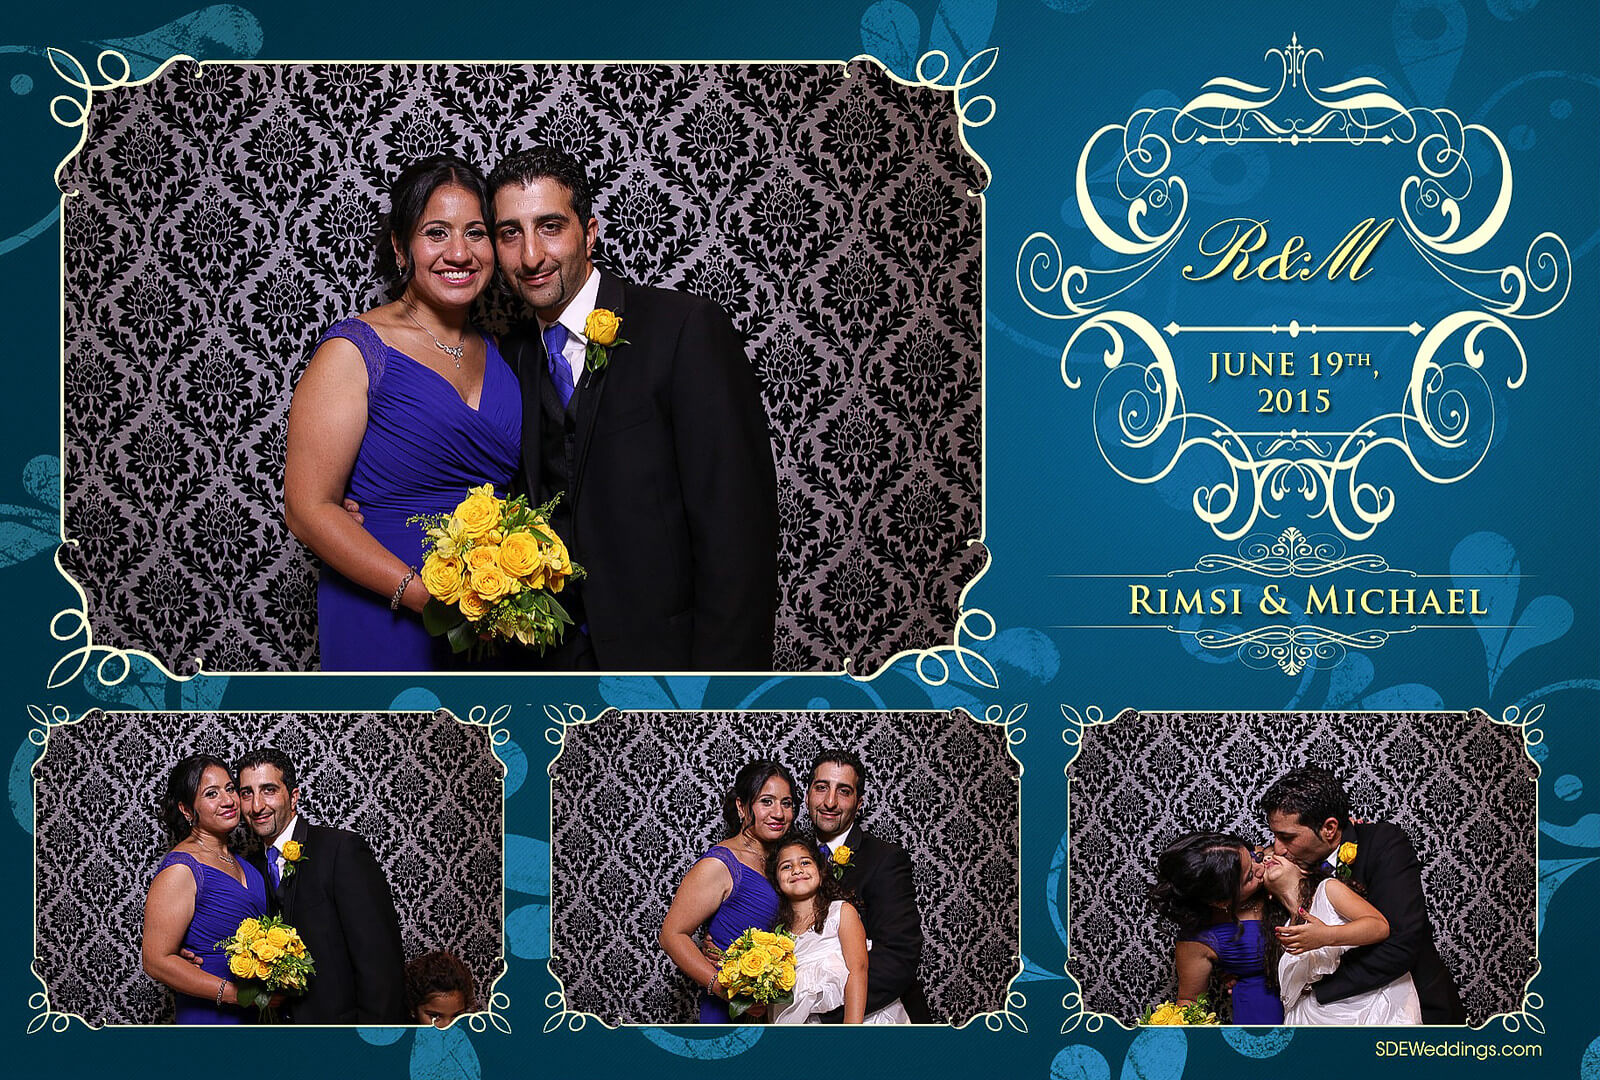 Toronto Italian Borgata Wedding Photo Booth Rental 1